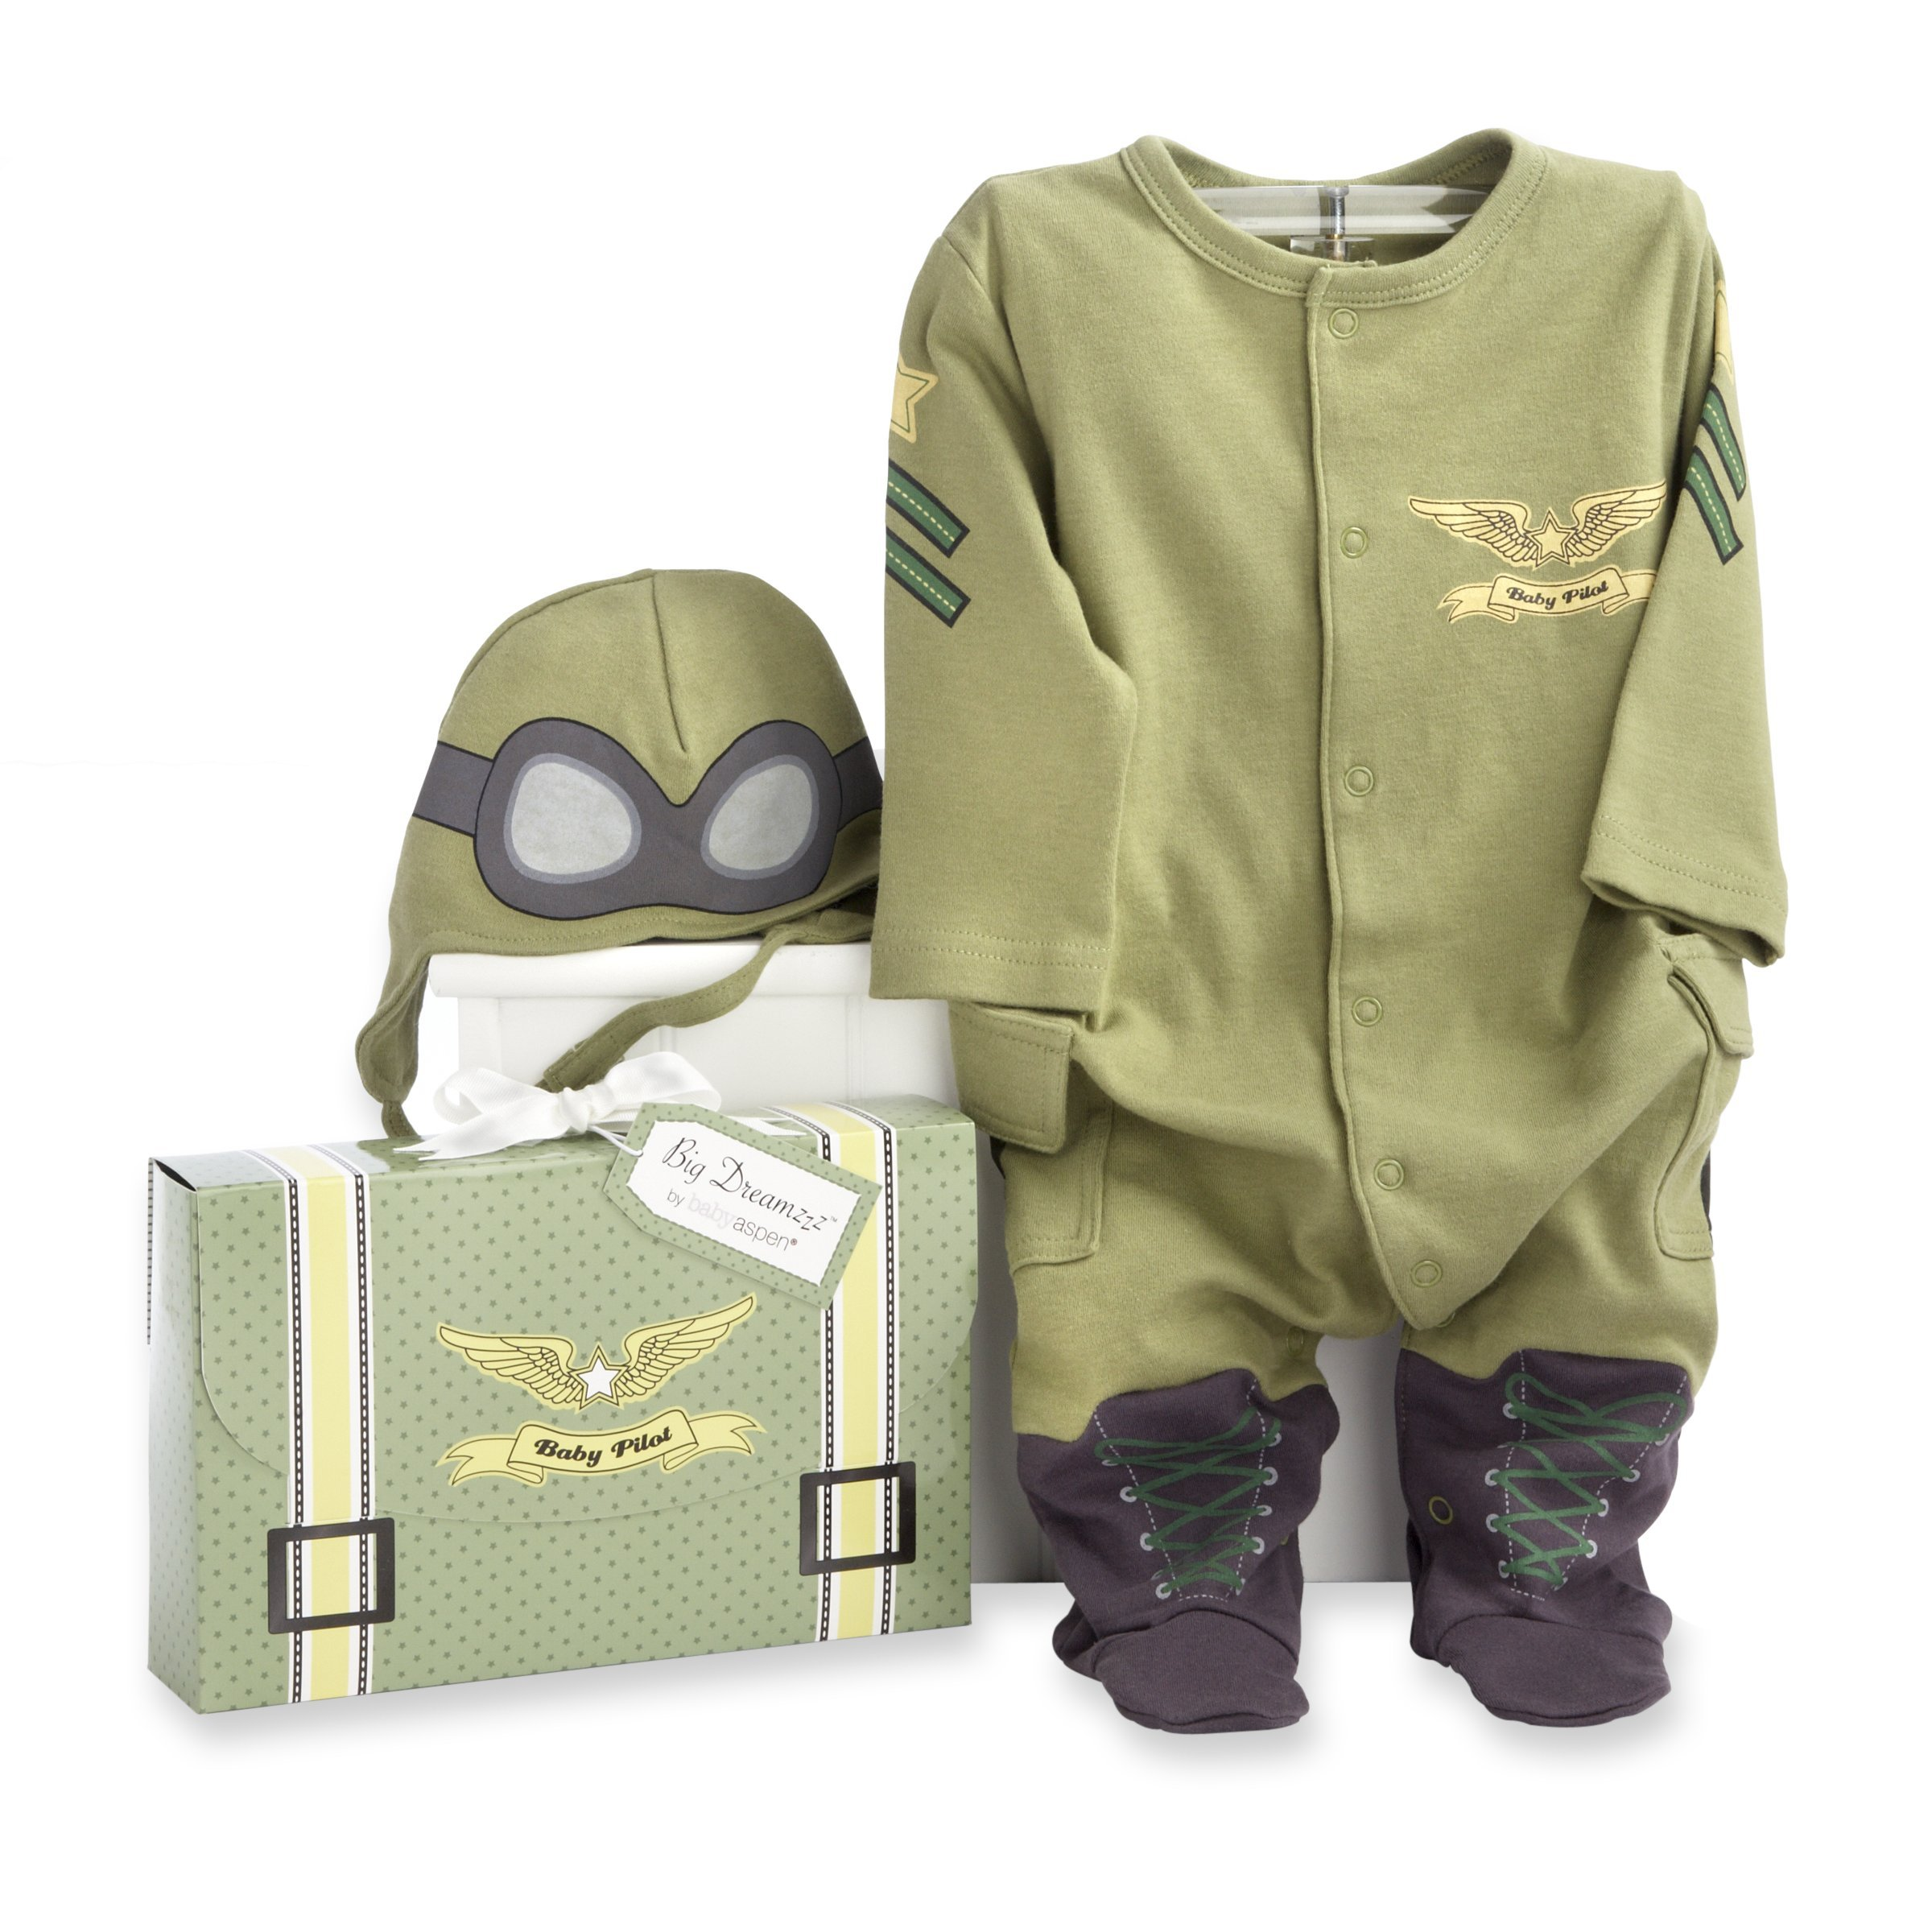 Best Rated In Baby Boys Layette Sets Helpful Customer Reviews Mom N Bab Vest Grey Bear Size 6t Aspen Big Dreamzzz Pilot Two Piece Set Green 0